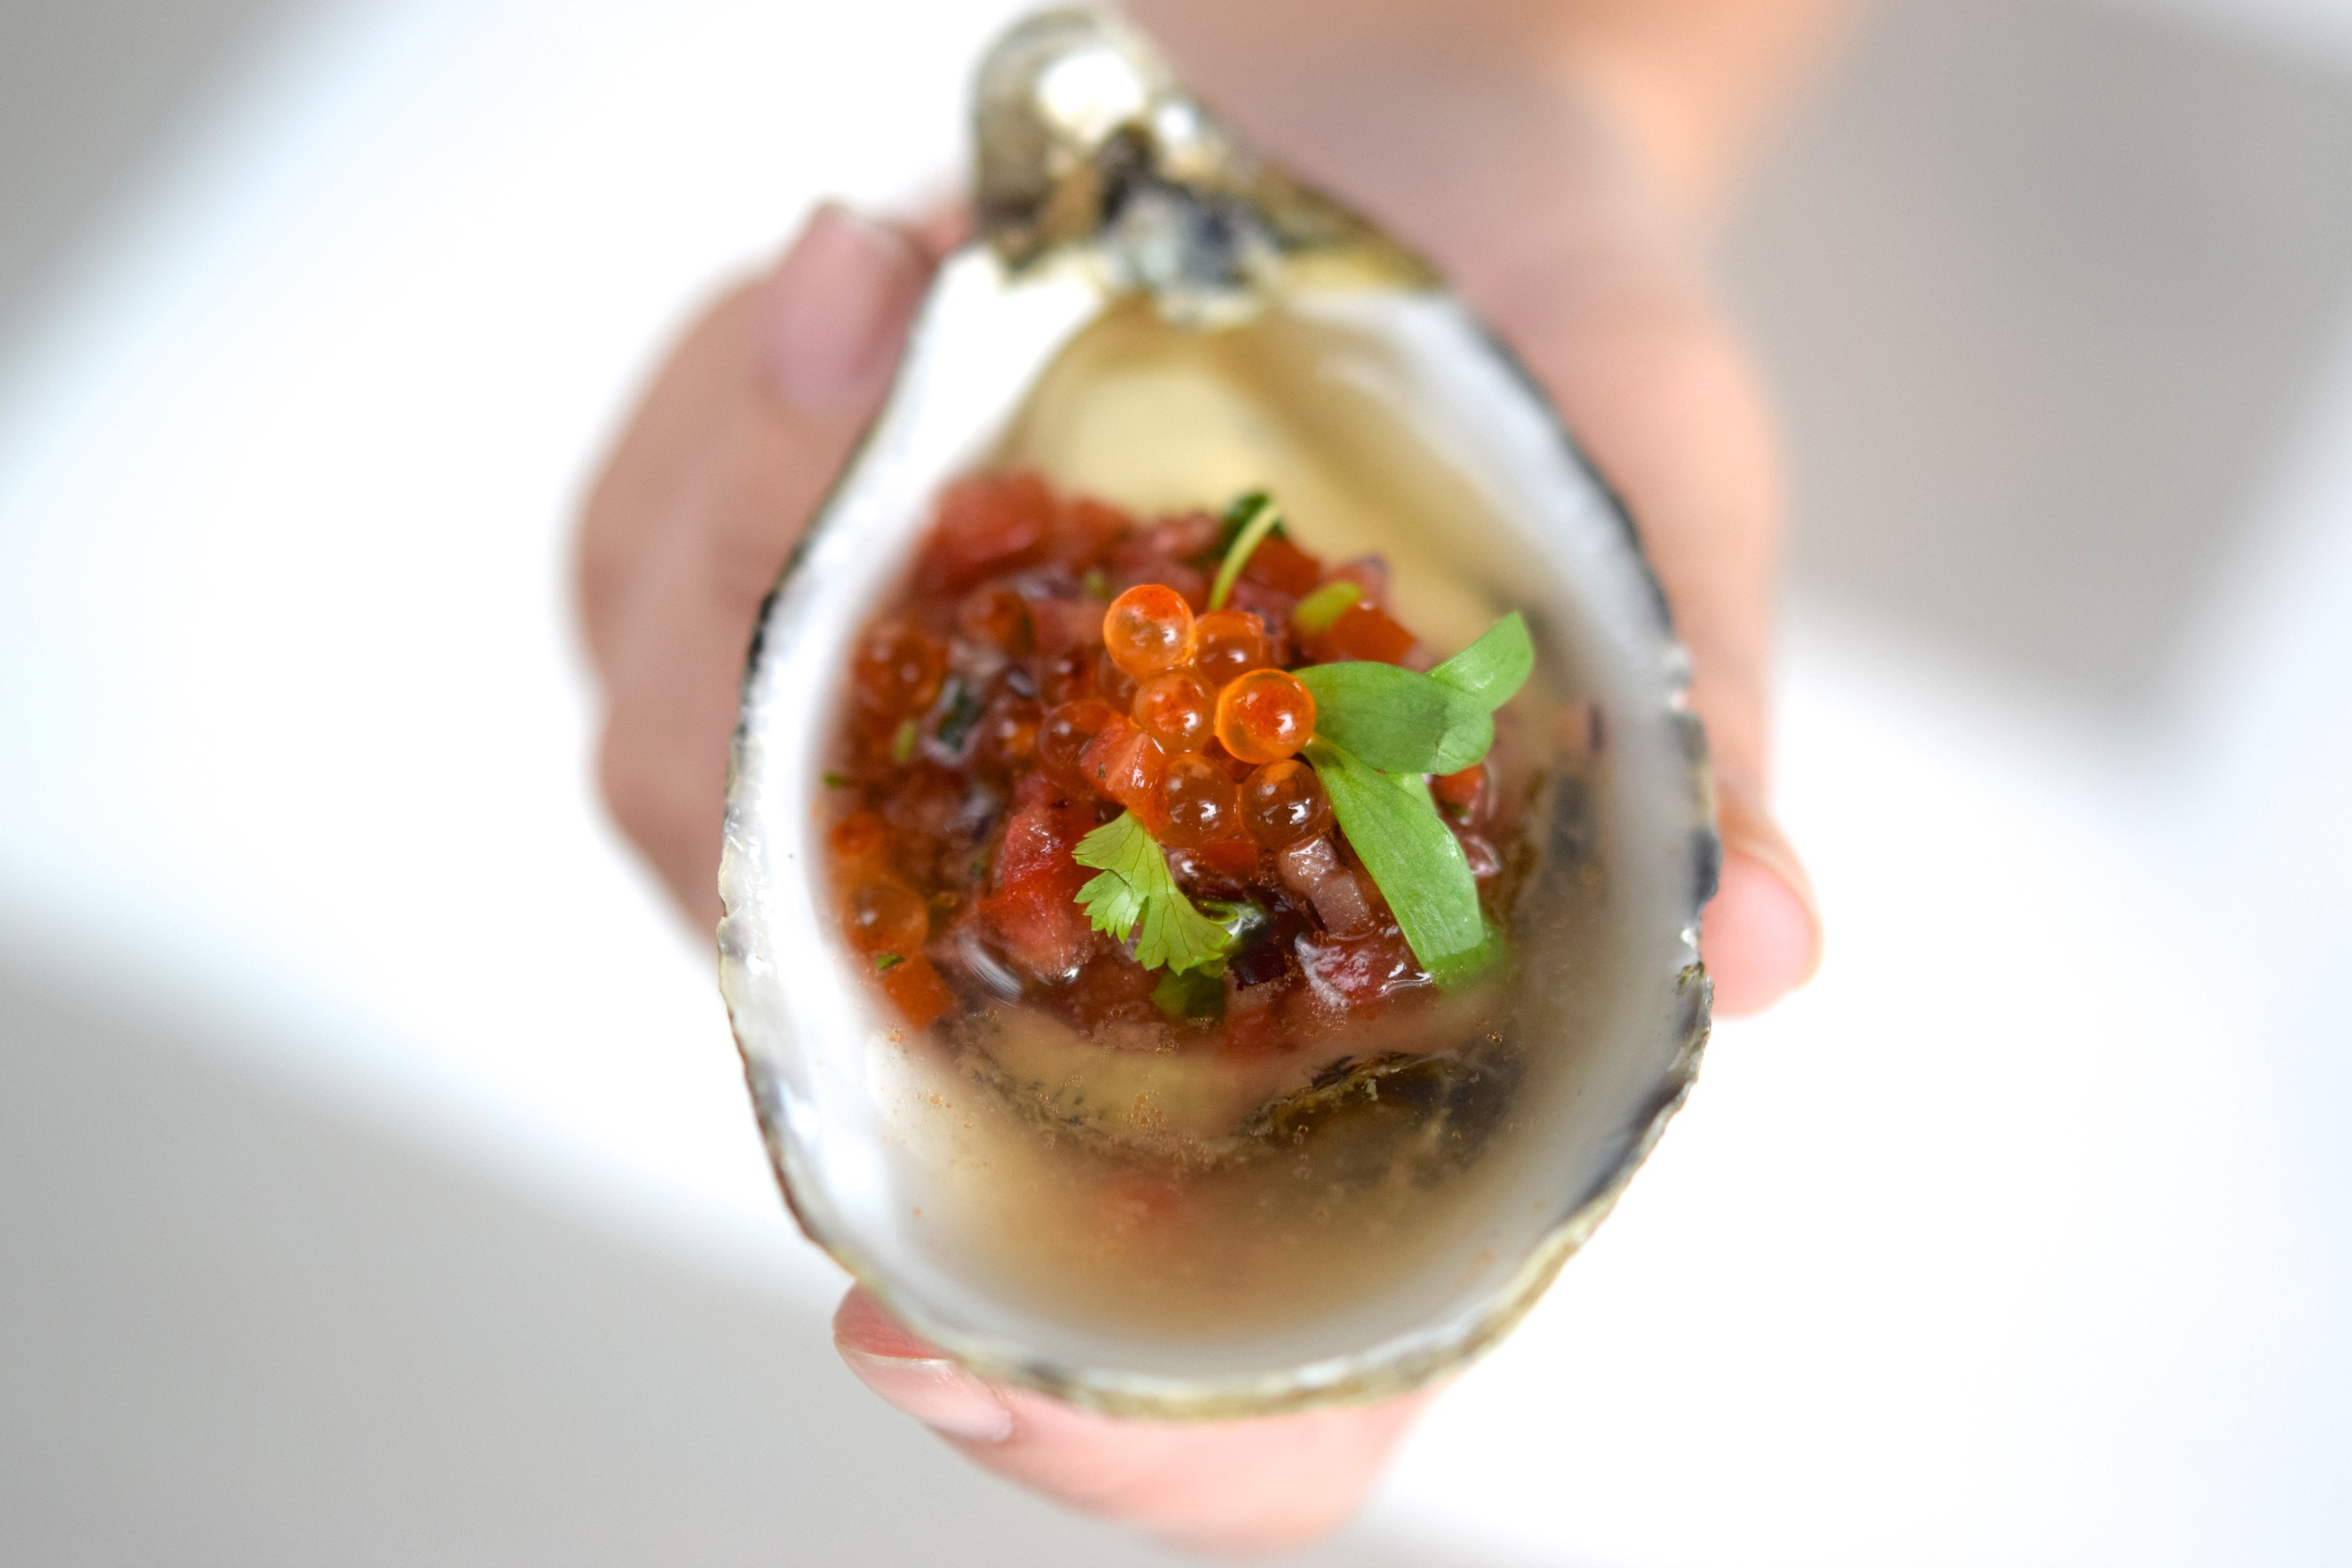 Roe + Oyster